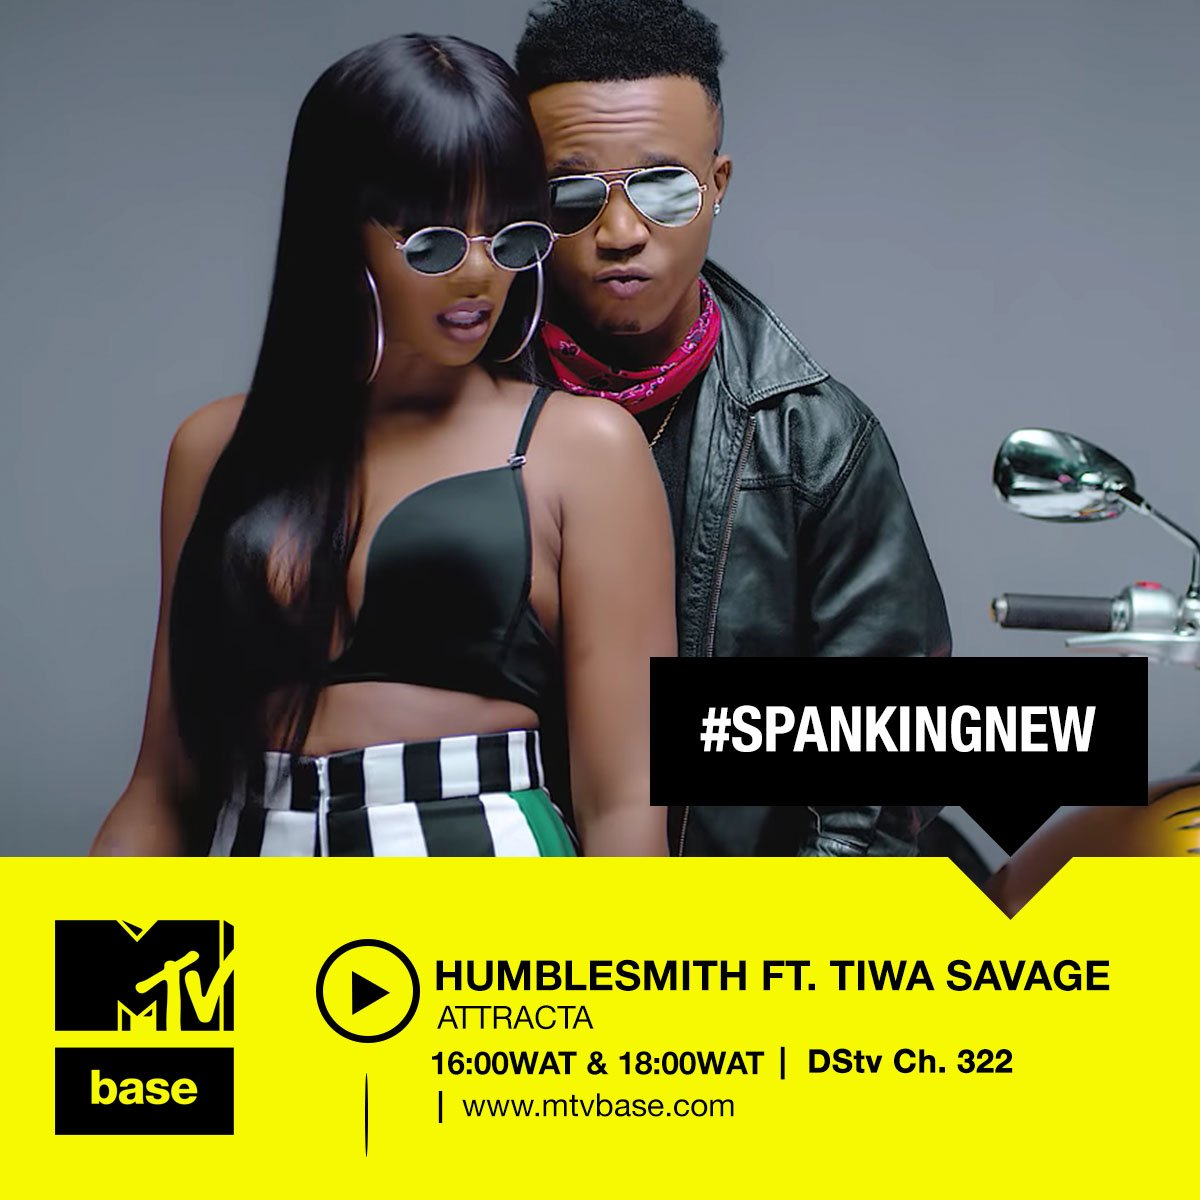 Tune in to Watch the premiere for @humblesmiths video to 'ATTRACTA' ft @TiwaSavage on #MTVBaseCh322 today @ 16:00 and 18:00 WAT on #SpankingNewPremiere